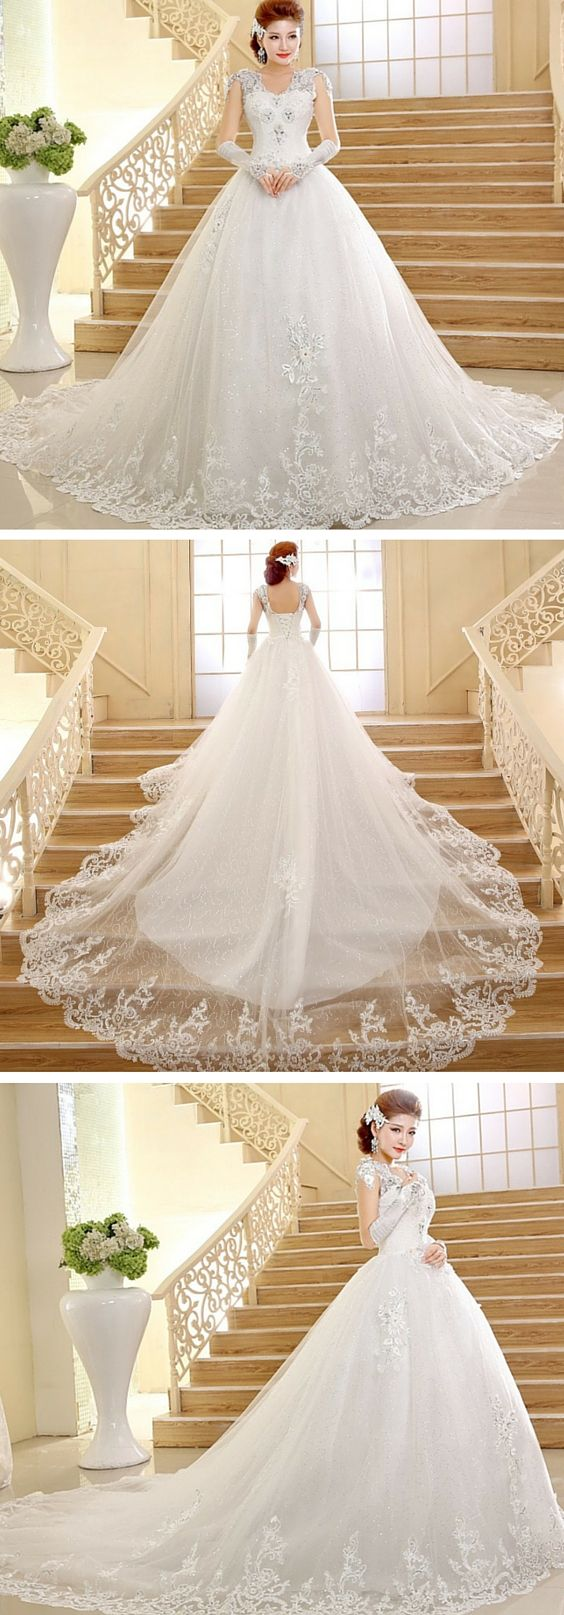 A dazzling tulle ball gown wedding dress with crystals and lace. It's easy to see why this stunning wedding dress is one of our most popular. It's affordable and gorgeous. Use code PTL20331 to get an lower price.